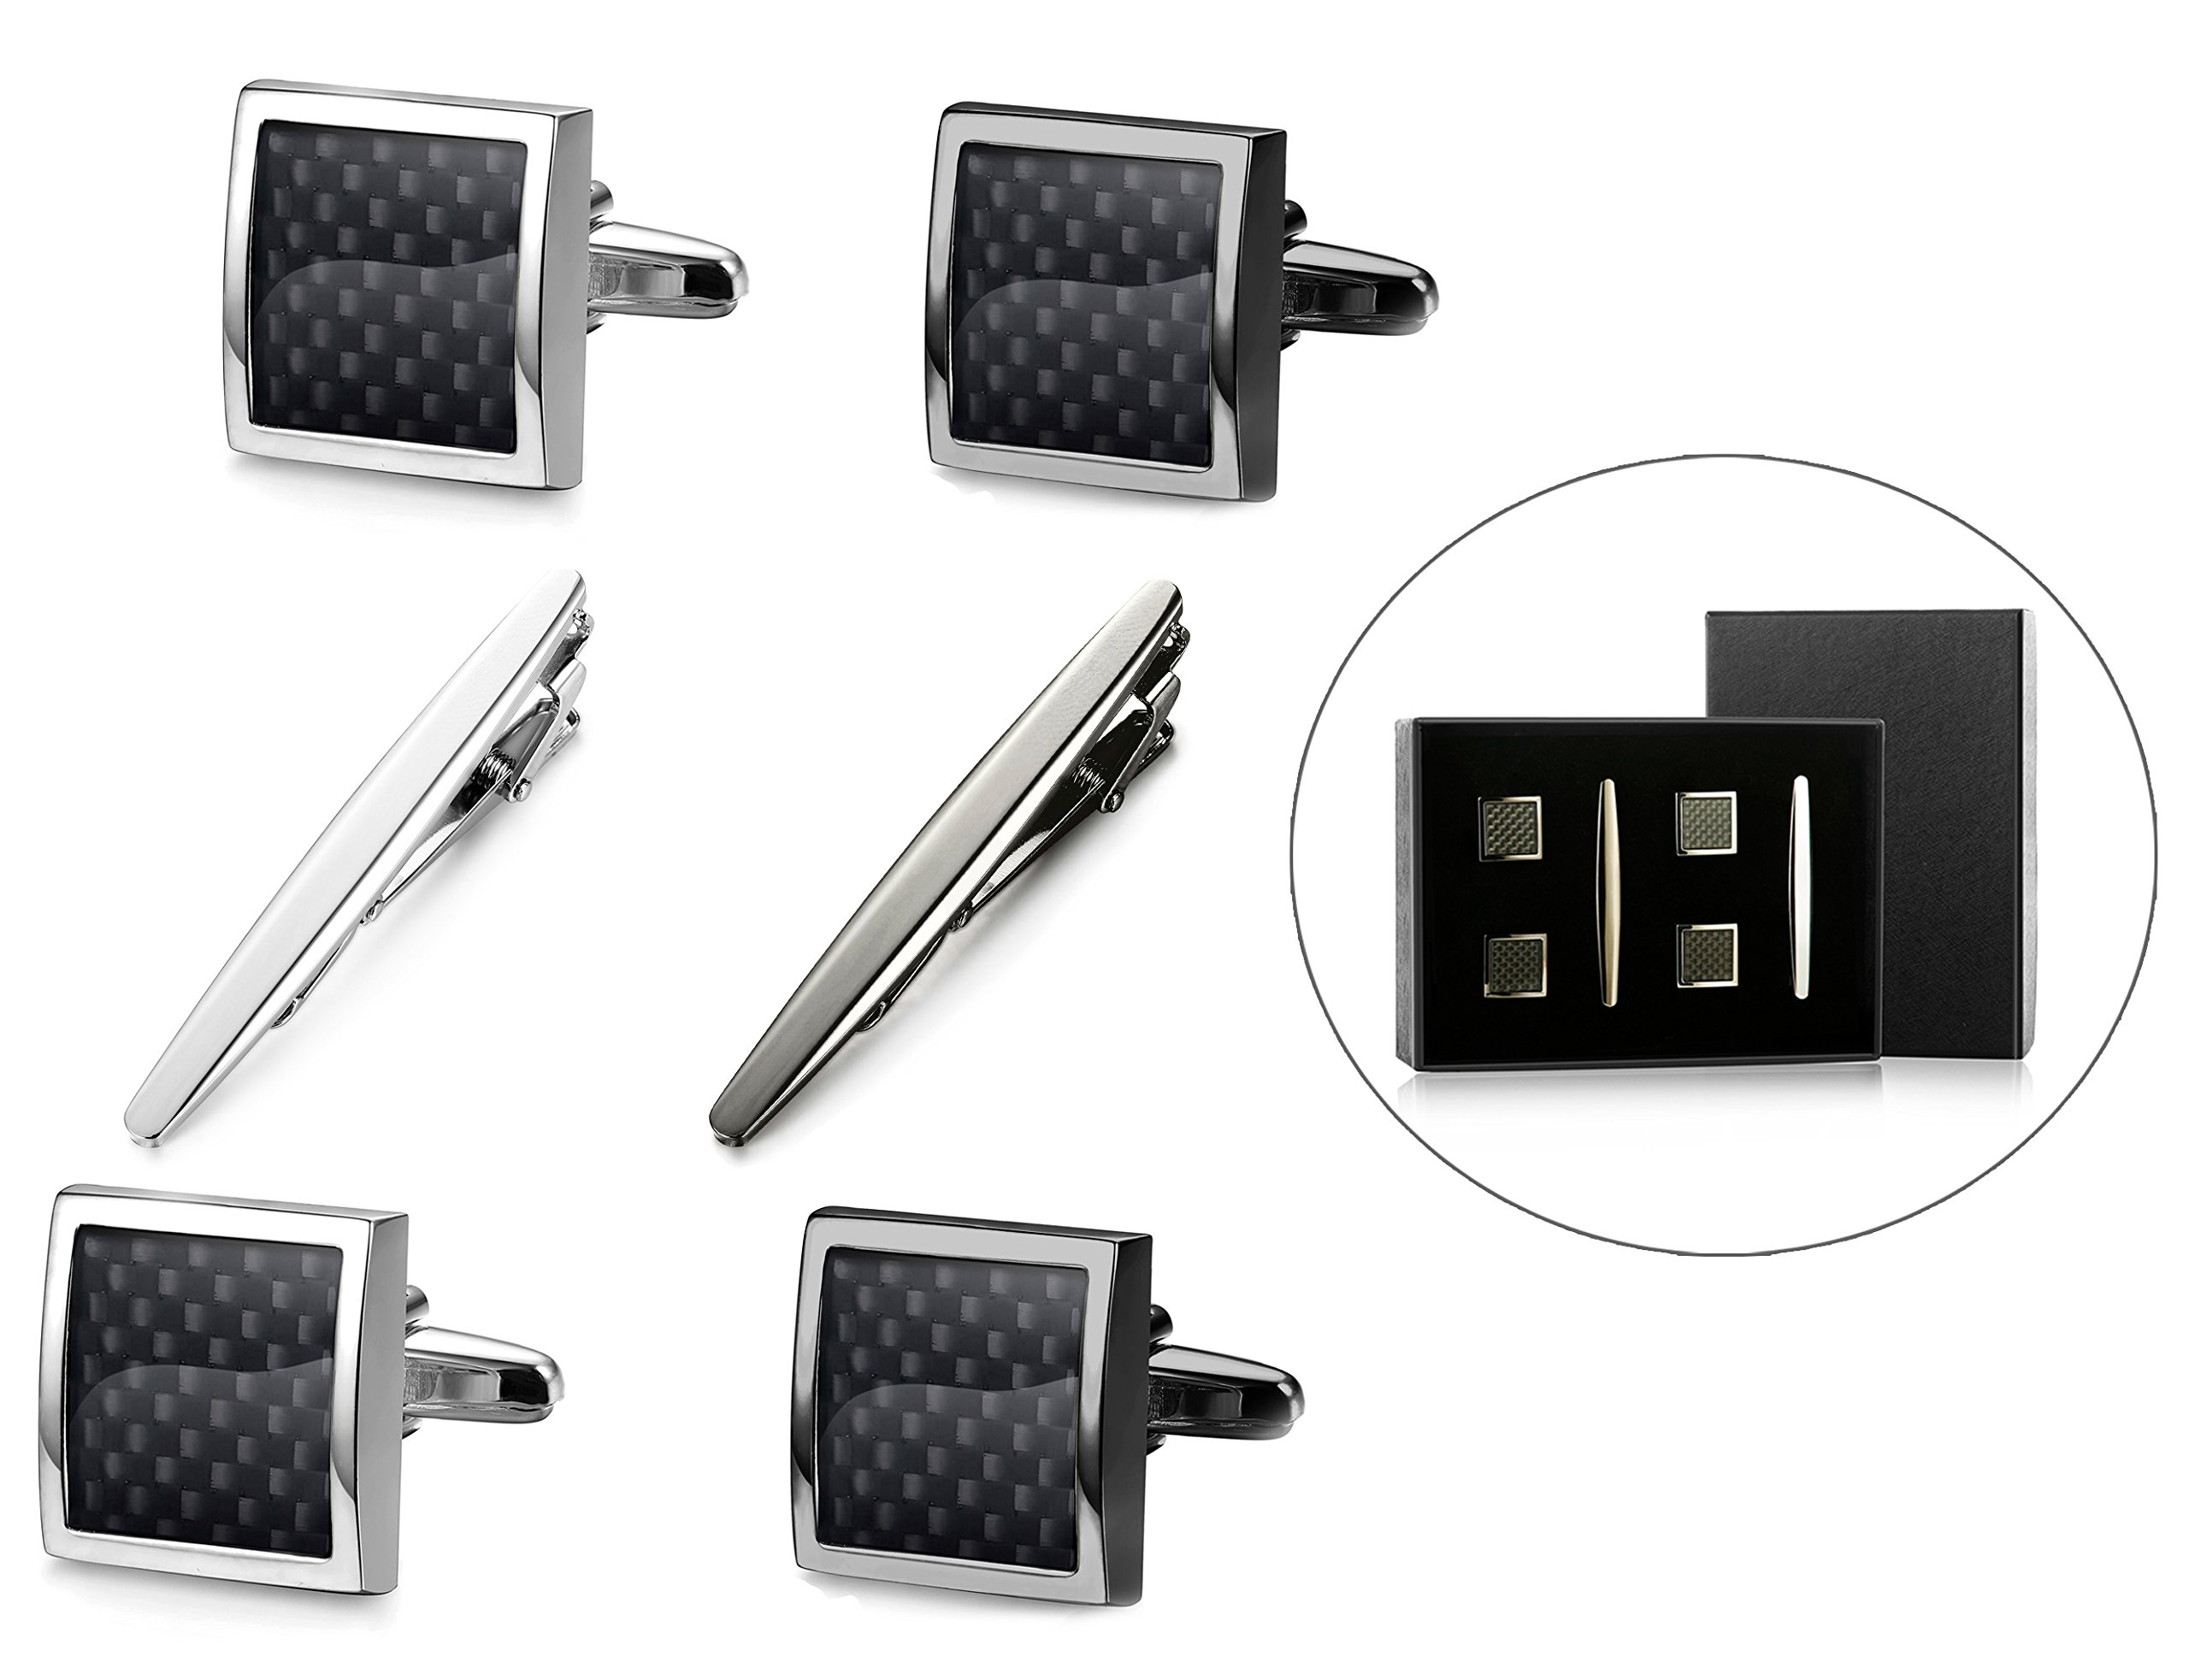 Jstyle Tie Clips and Cufflinks Set for Men Tie Bar Clip Shirt Cufflinks Carben Fiber Set with Box